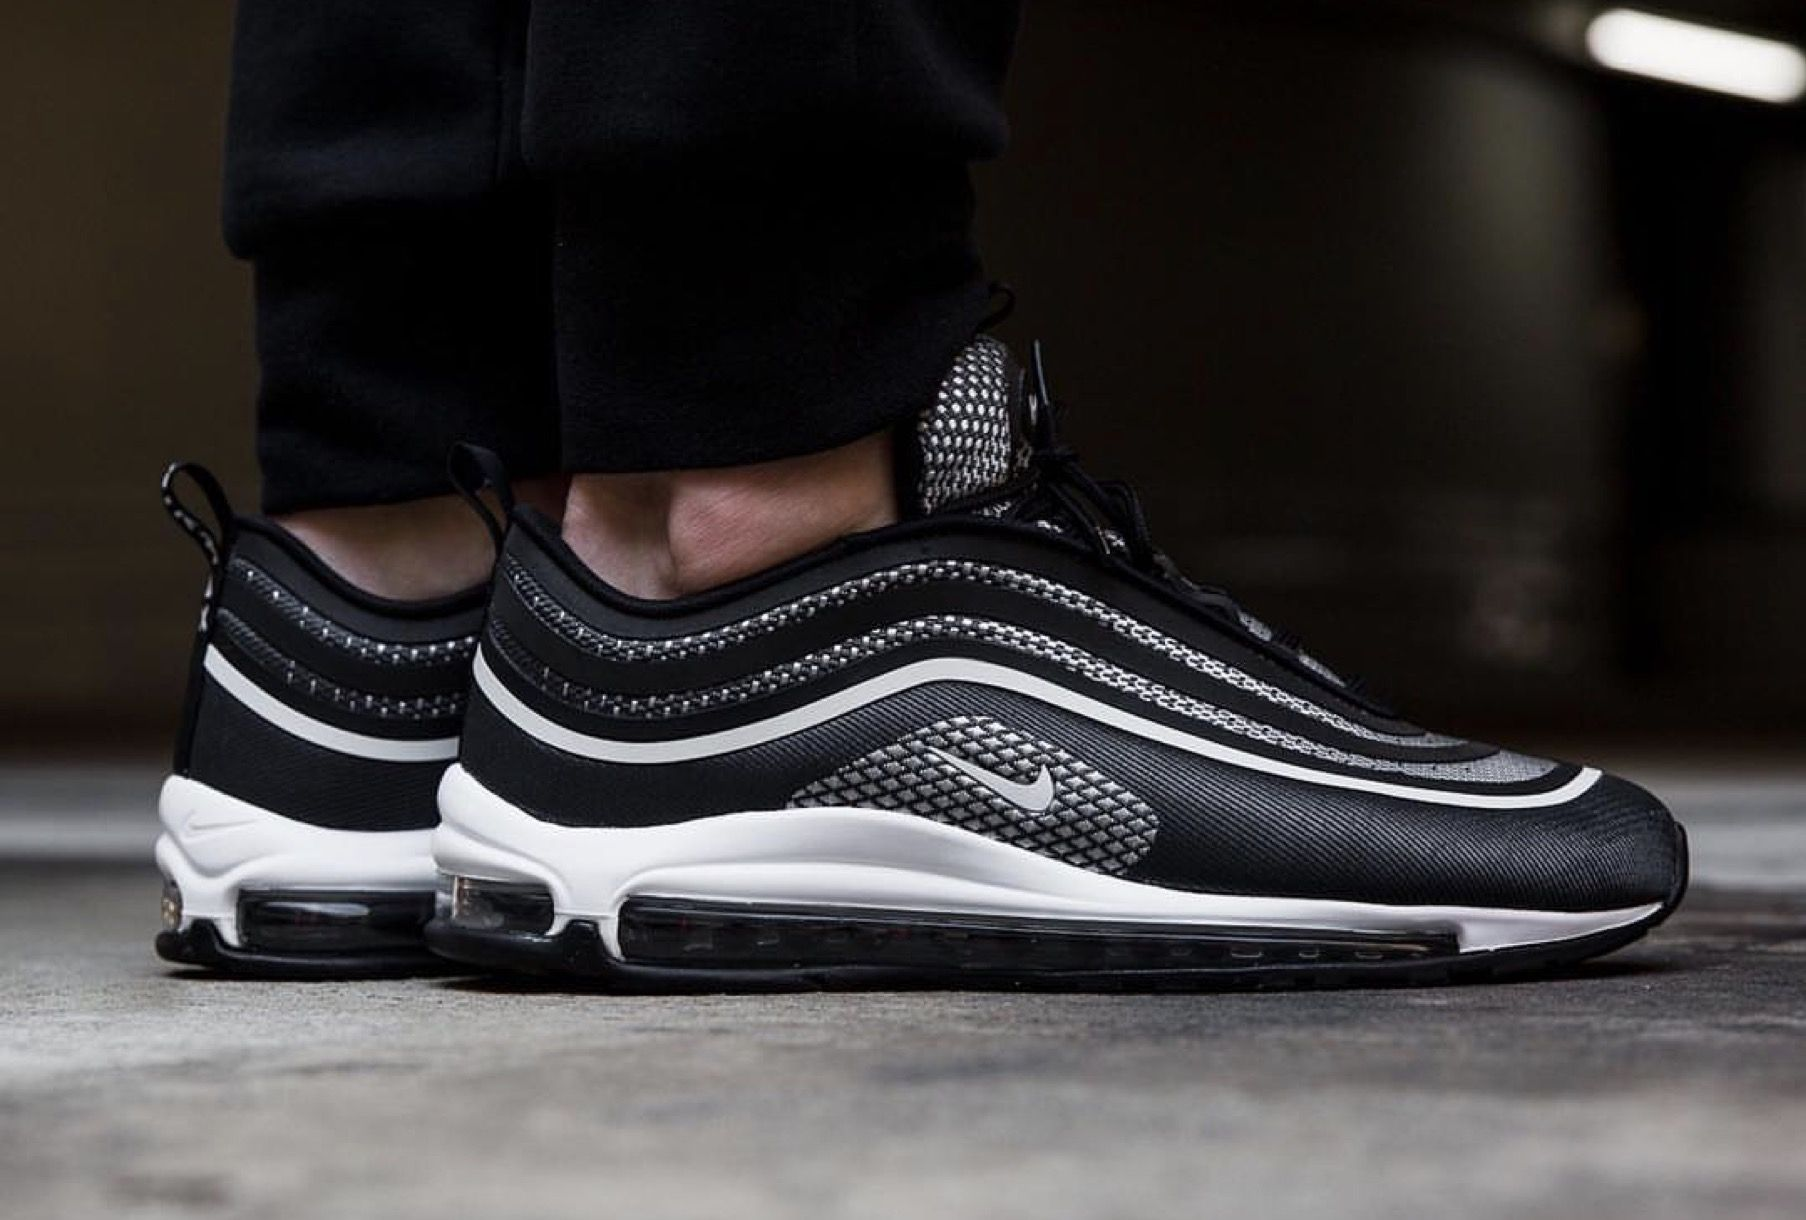 Release Date August 17 2017 Nike Air Max 97 Ultra 17 Black Anthracite Credit Overkill Sneakers Nike Air Max Nike Air Max 97 Nike Air Max